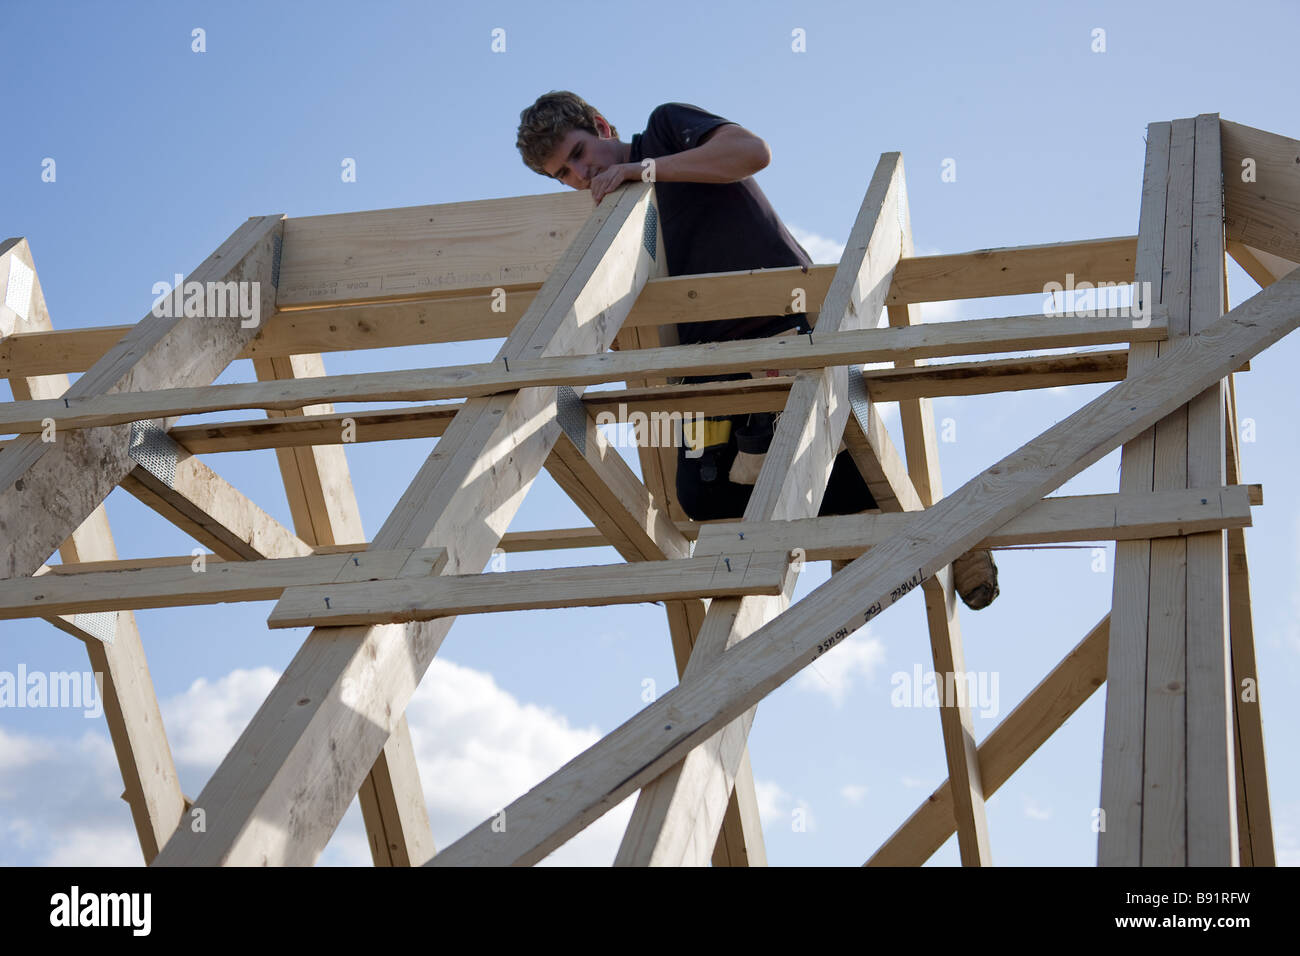 Fixing a ridge board between two attic trusses stock photo for Buy roof trusses online